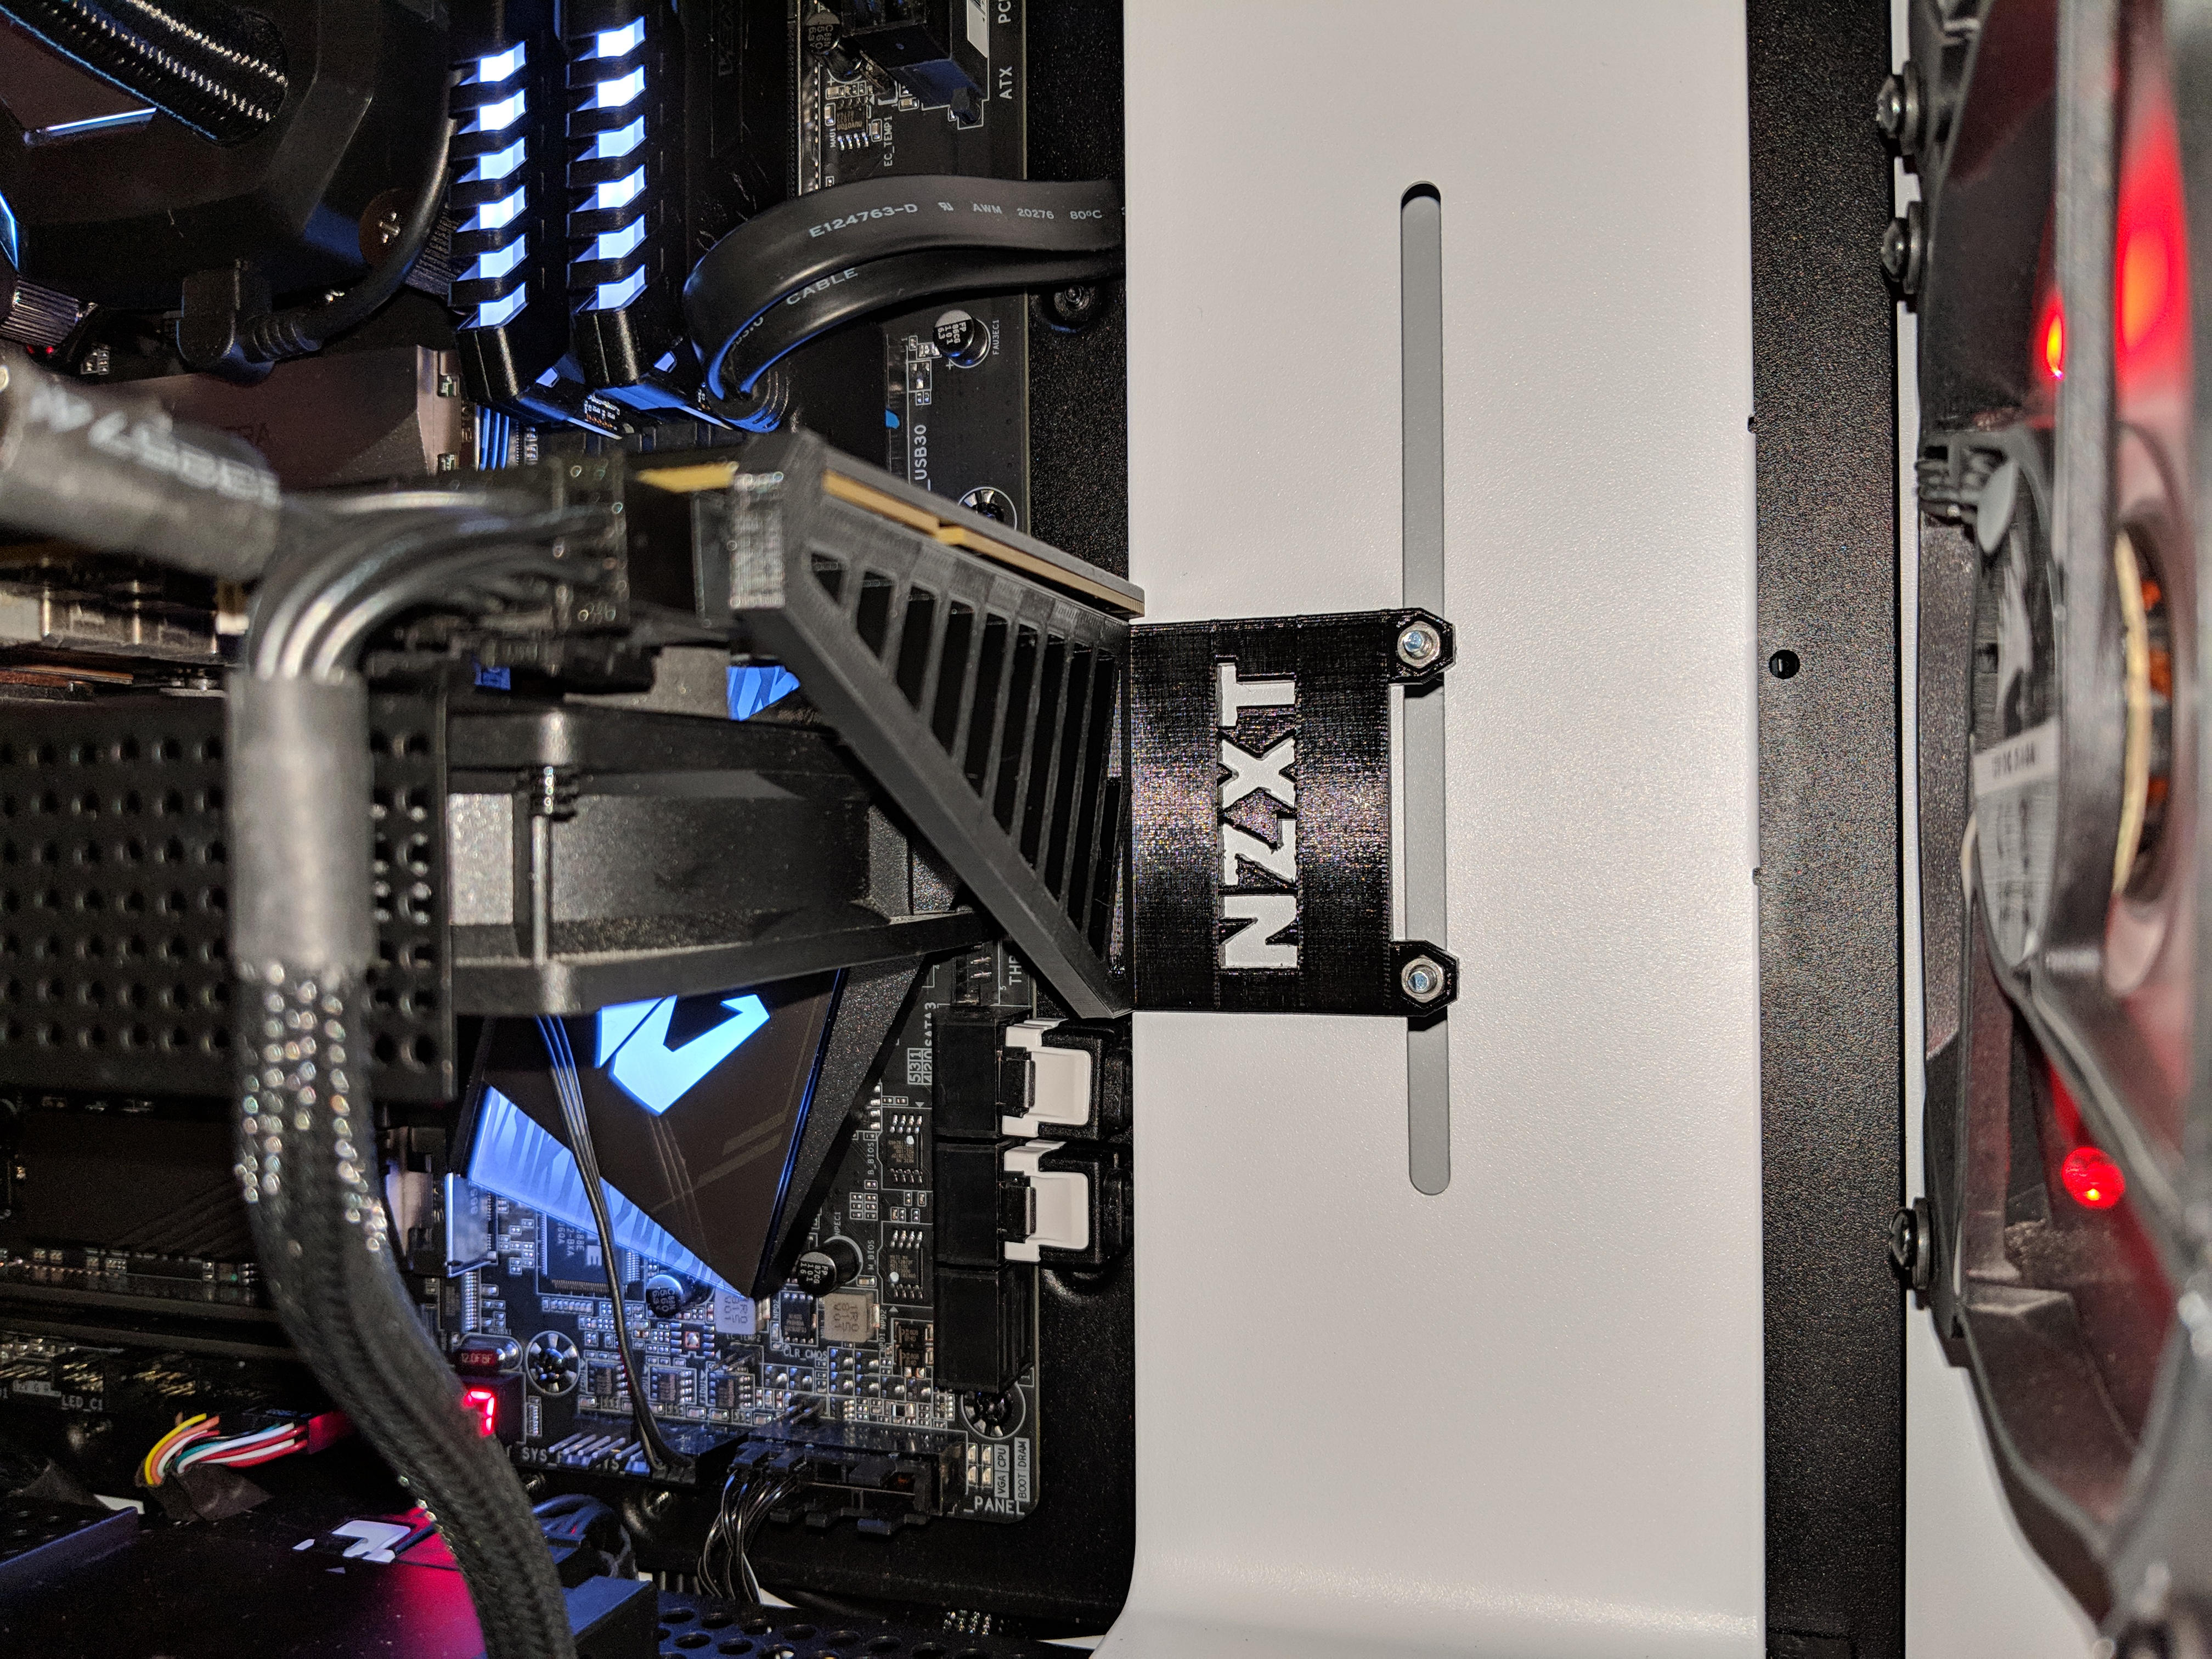 NZXT H700 GPU Support Bracket by ucancallmebob89 - Thingiverse